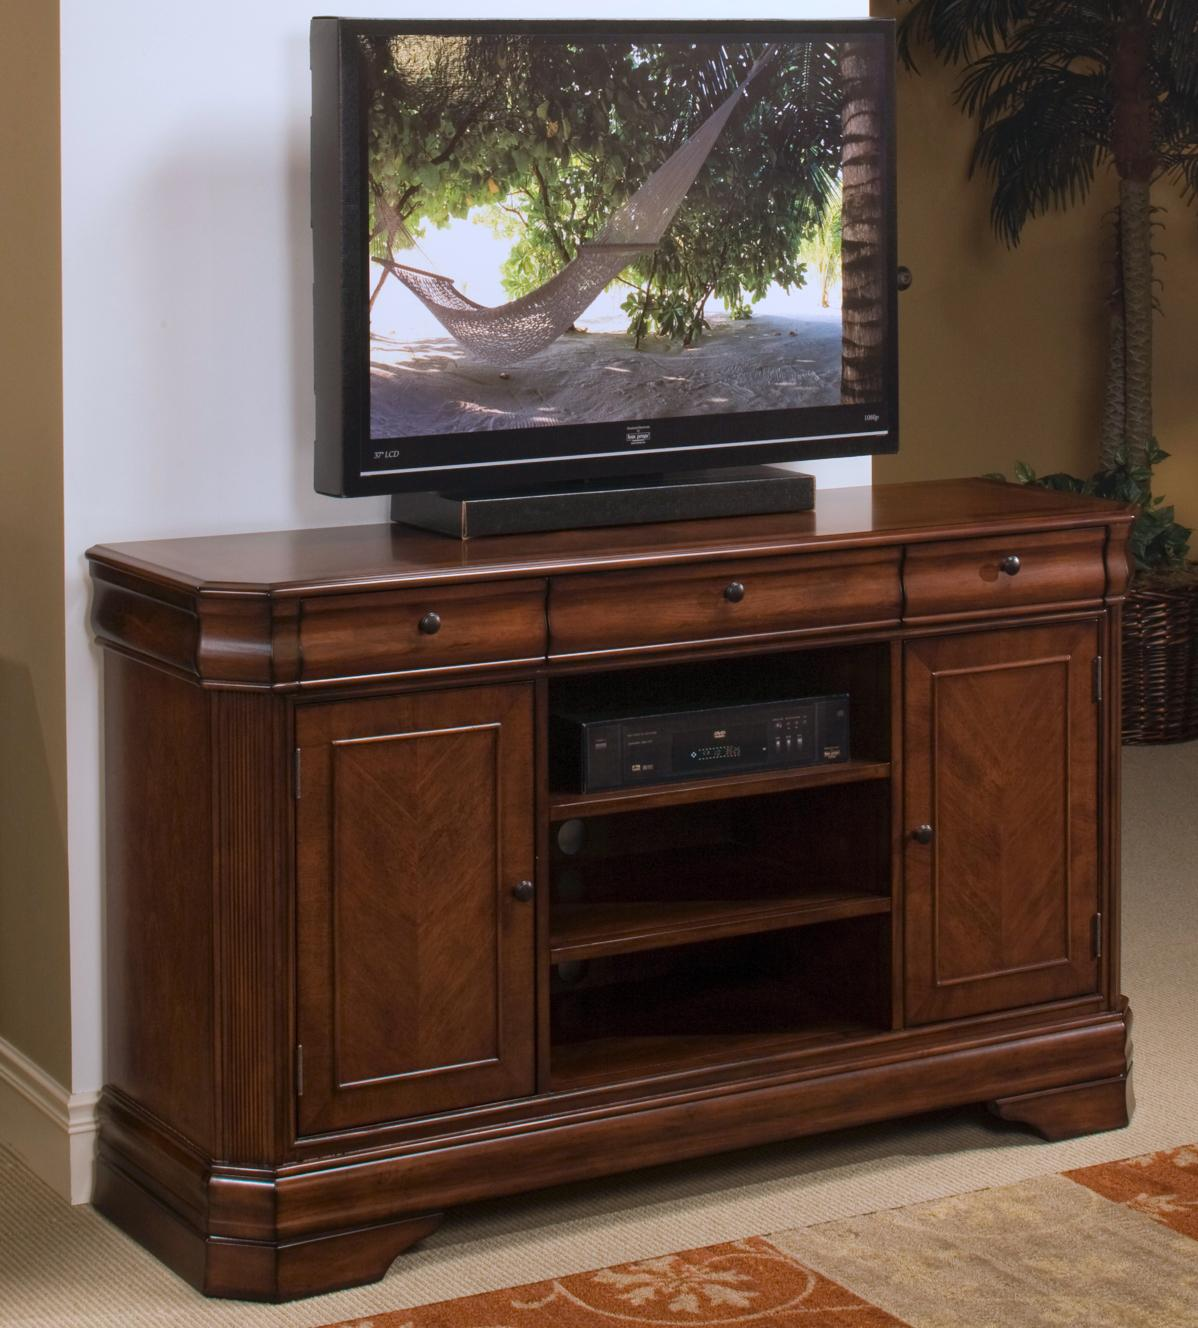 New classic sheridan 10 005 10 tv entertainment console for American furniture warehouse tv stands